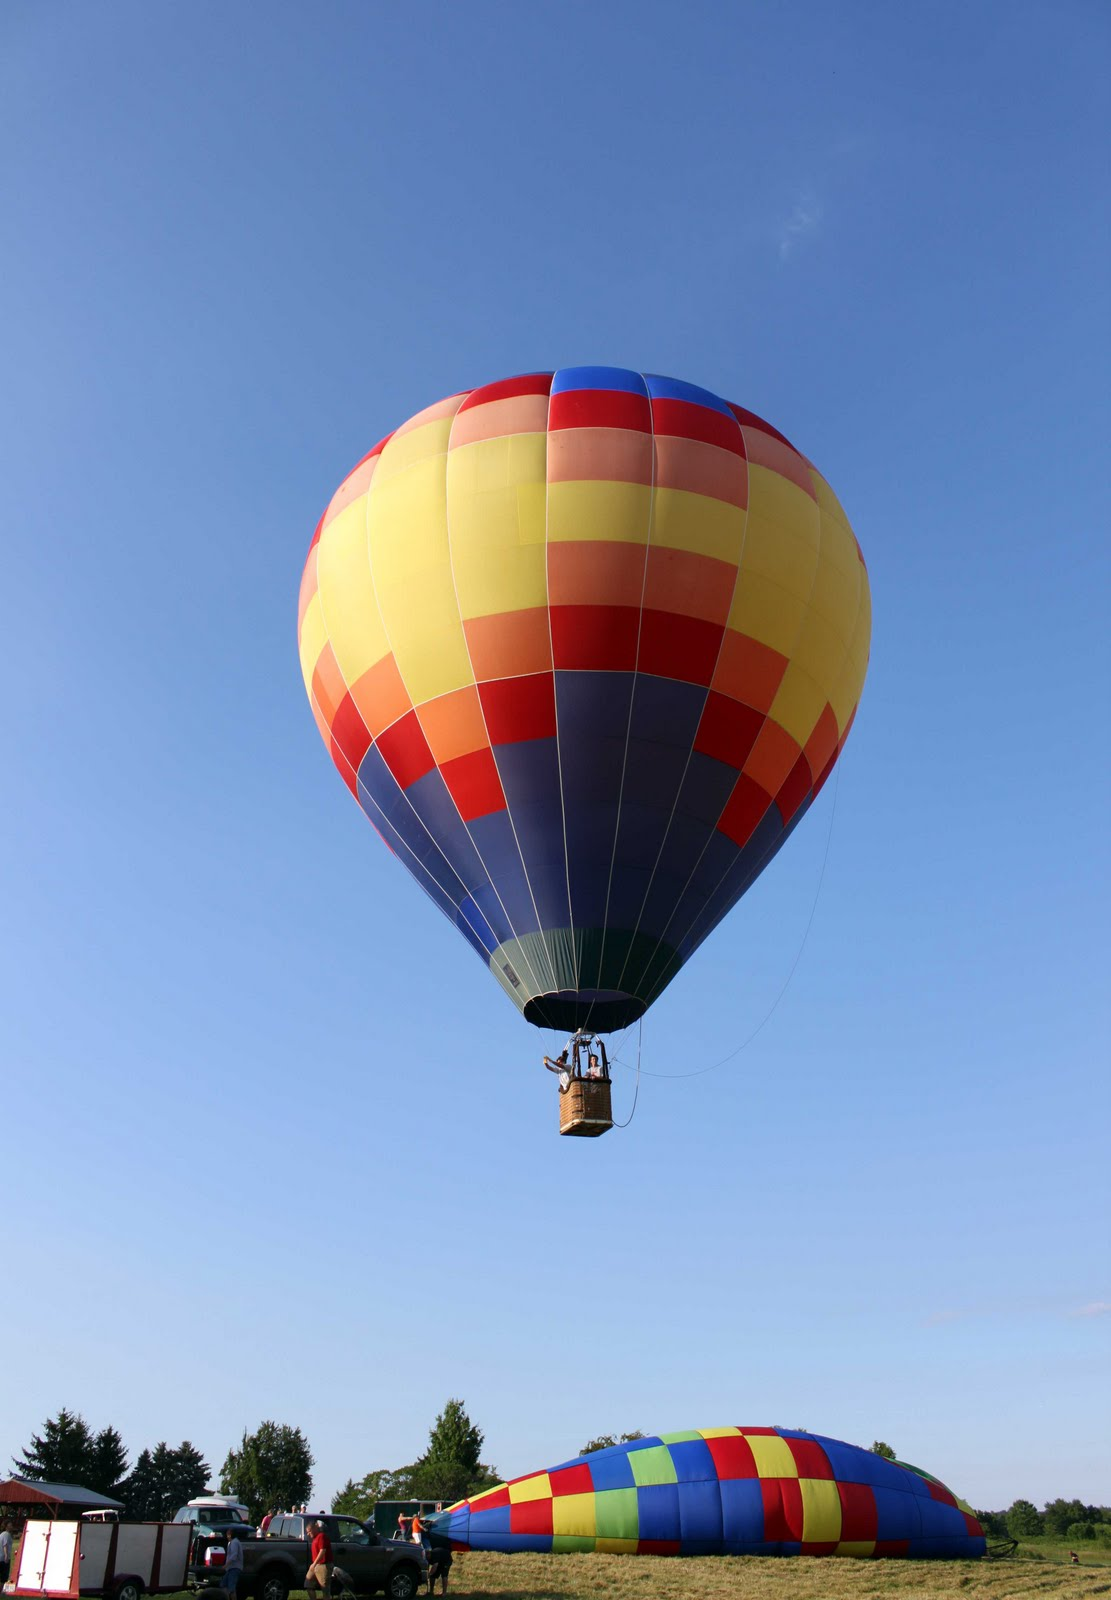 balloon air festival sky amazing gifts class brilliantly colored